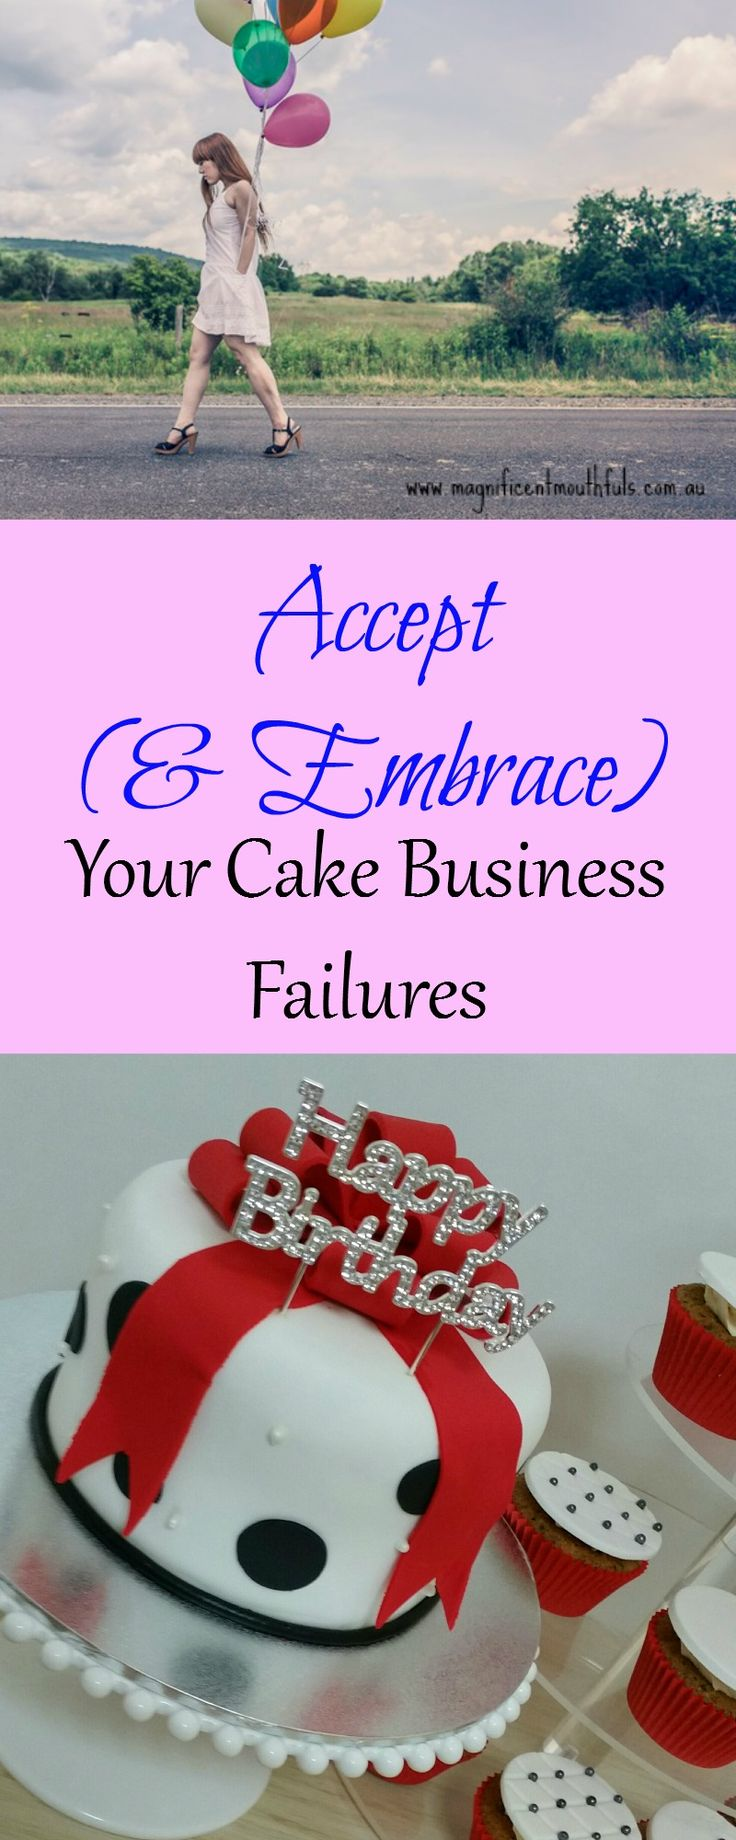 Cake Decorating Course Worthing : 25+ best ideas about Cake business on Pinterest Home ...